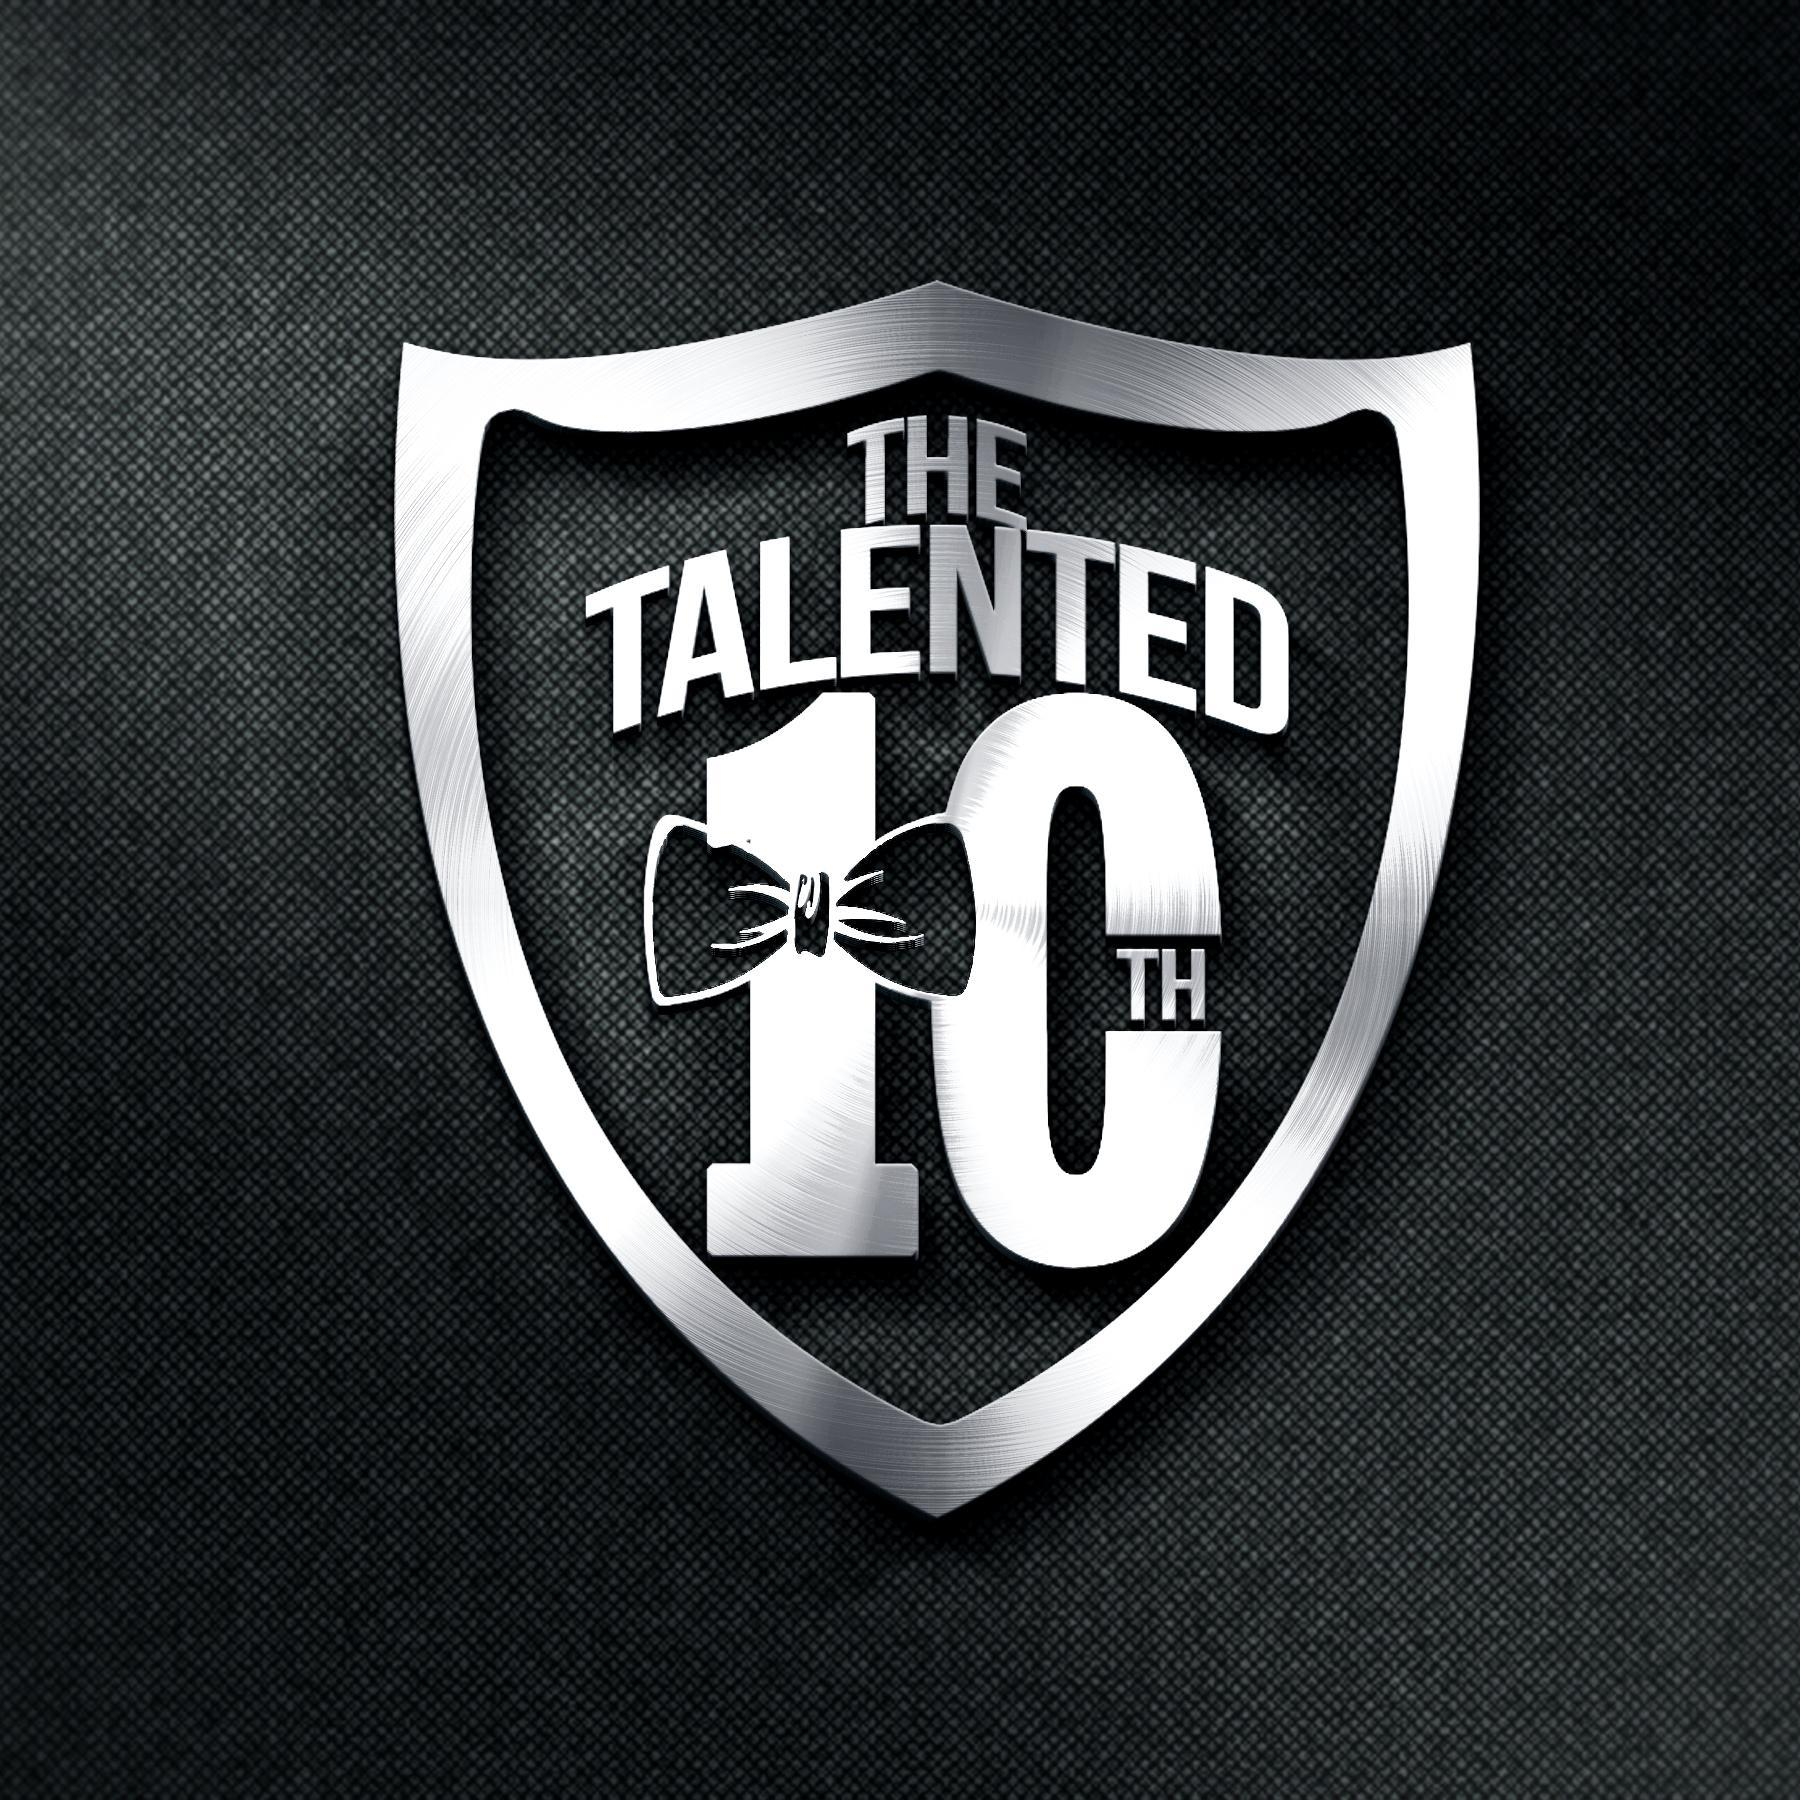 the talented tenth The talented tenth theatre 390 likes 1 talking about this our mission is to improve the skill of the individual artist to go out, share what they.